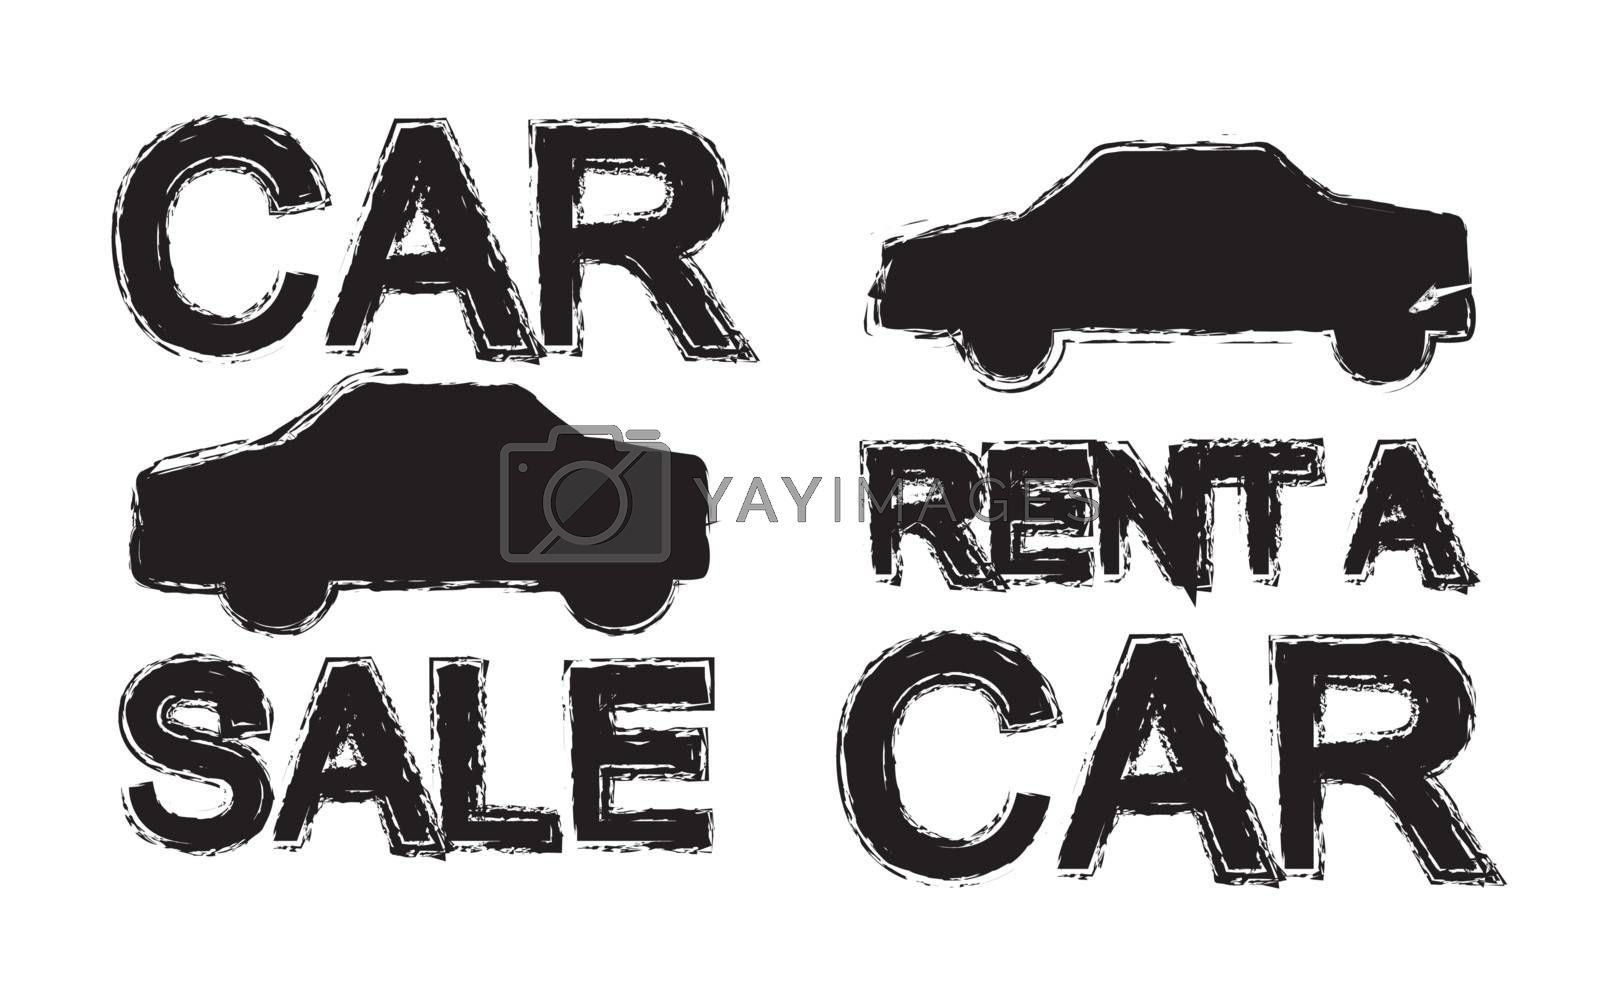 promotion silhouettes car renta and car sale over white background